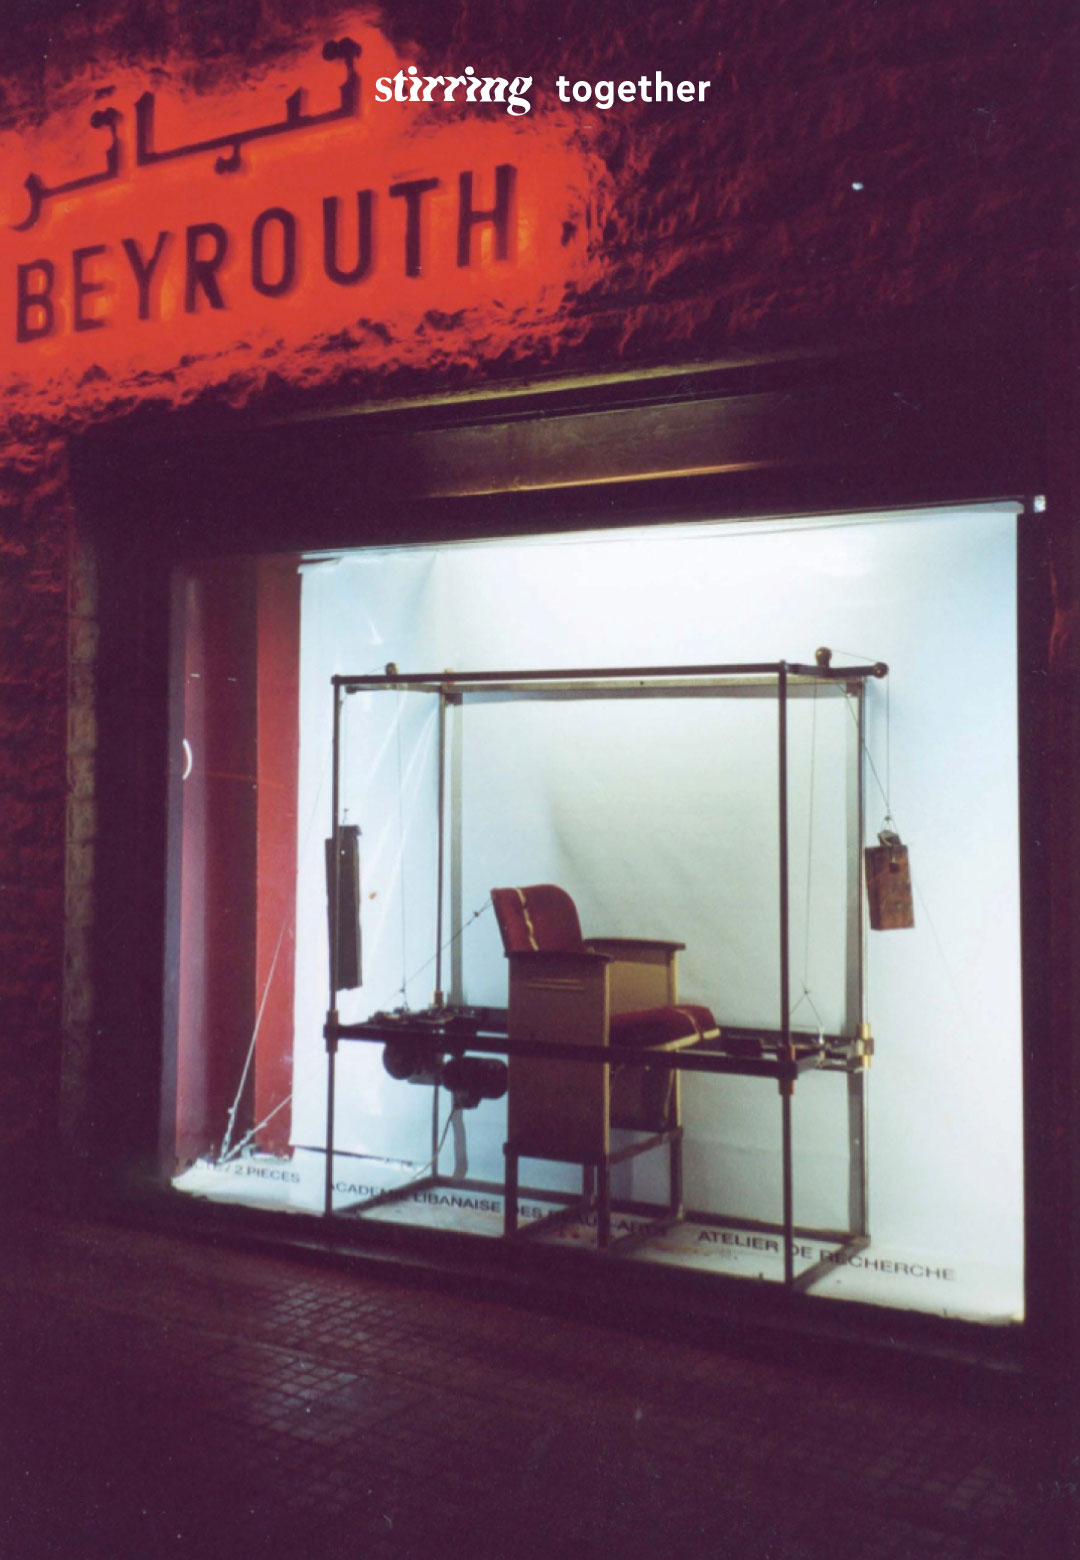 Rana Haddad, Assistant Professor of Architecture at the American University of Beirut and Co-Founder of studio 200 Grs; Beyrouth, installation 1 acte/ 2 pieces, in Theatre De Beyrouth vitrine   Beirut Shifting Grounds   STIRworld